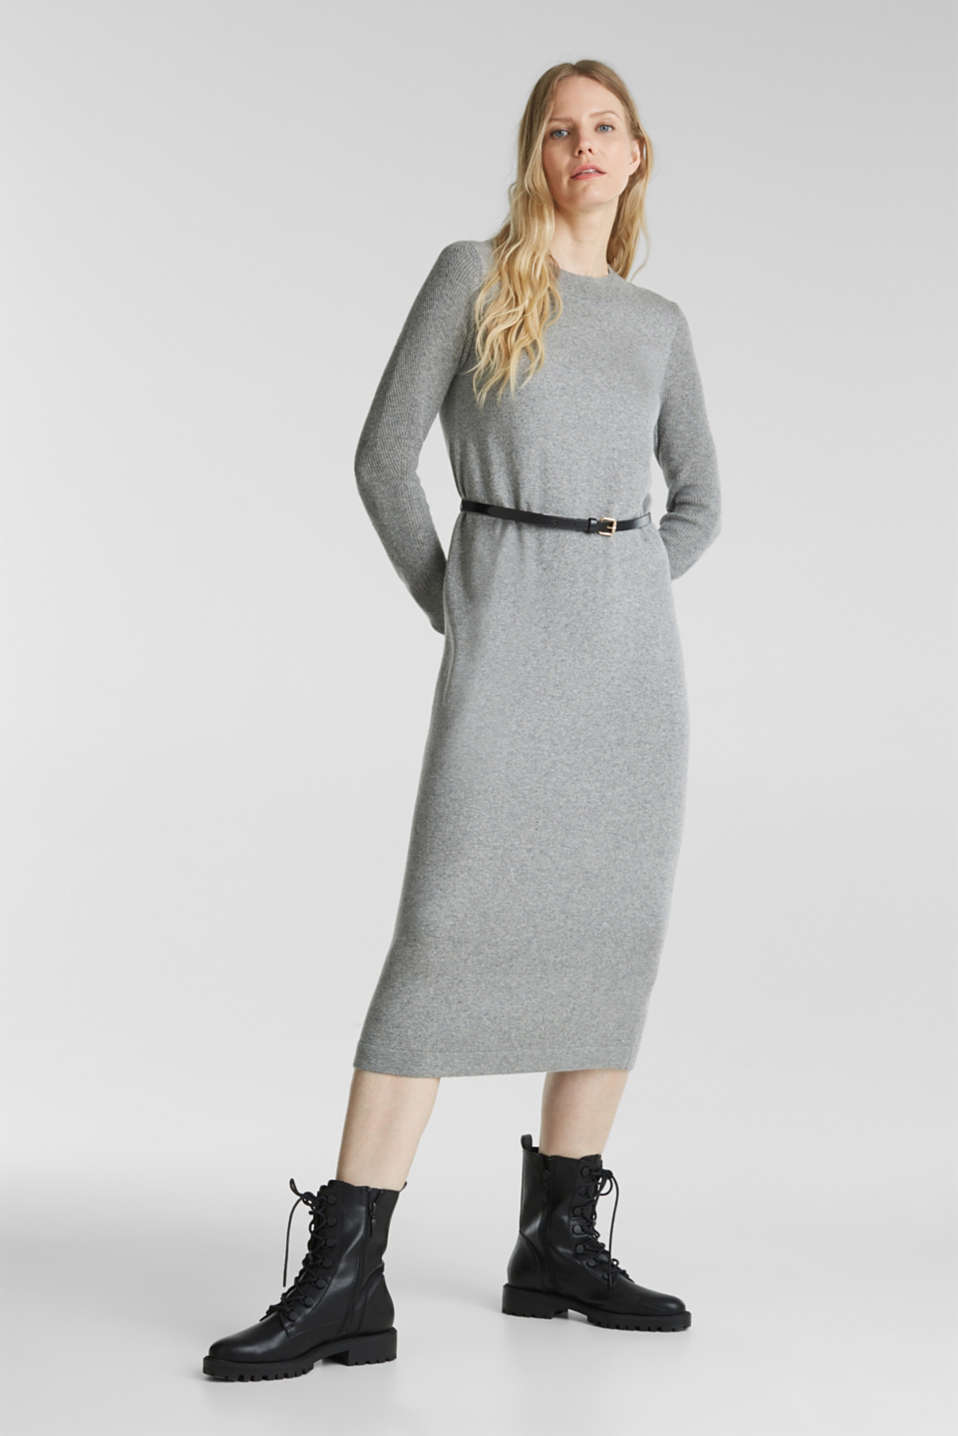 Esprit - With cashmere: knit dress with a belt